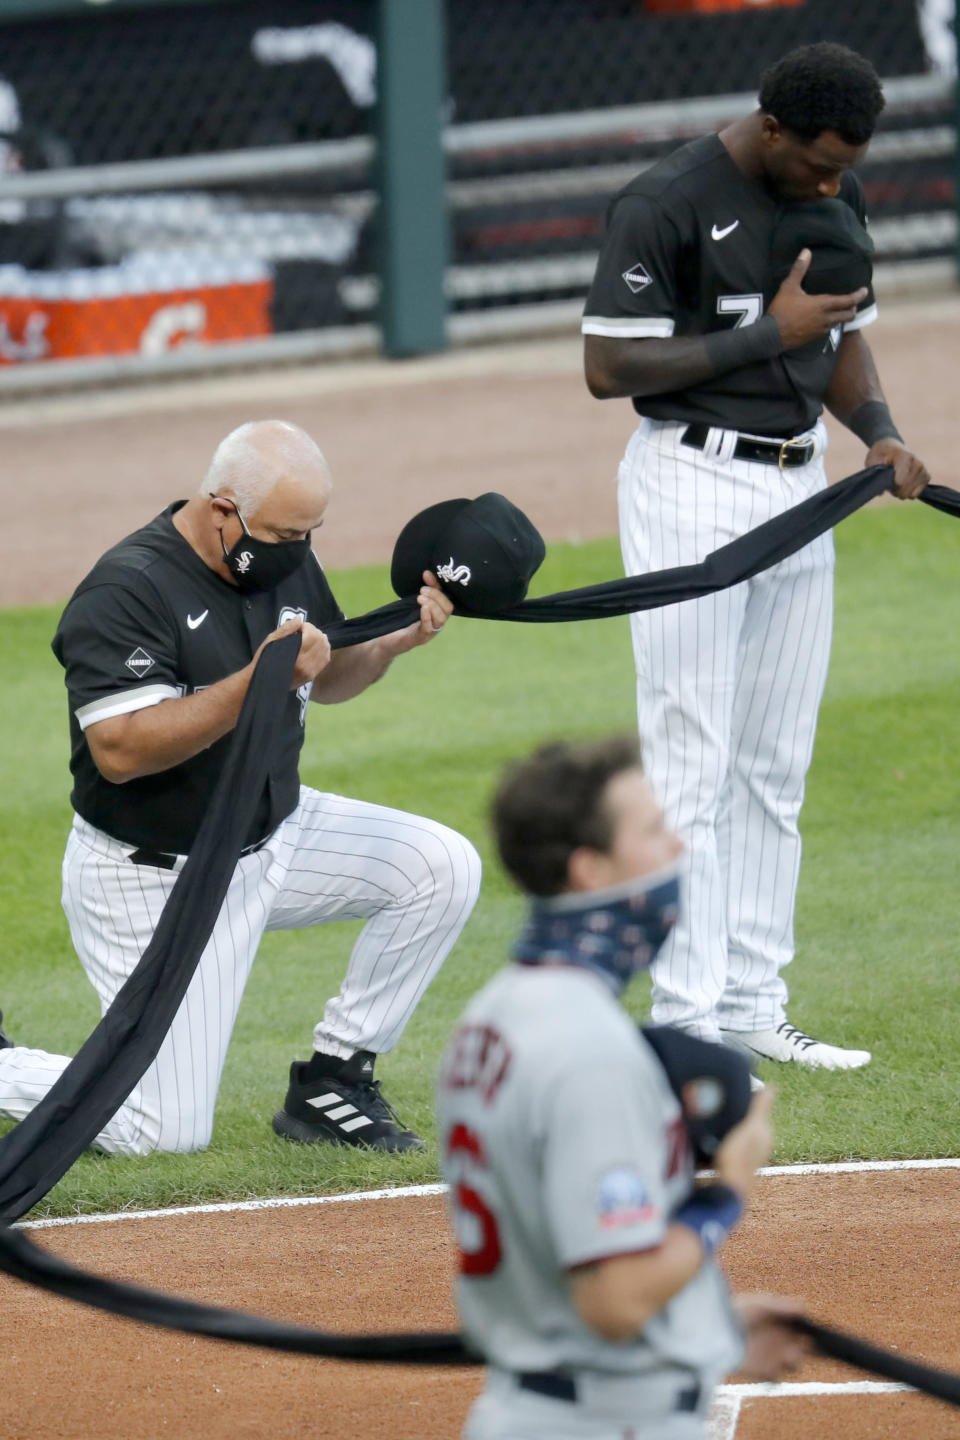 Chicago White Sox manager Ricky Renteria kneels for social justice next to Tim Anderson before a baseball game against the Minnesota Twins, Friday, July 24, 2020, in Chicago. (AP Photo/Charles Rex Arbogast)